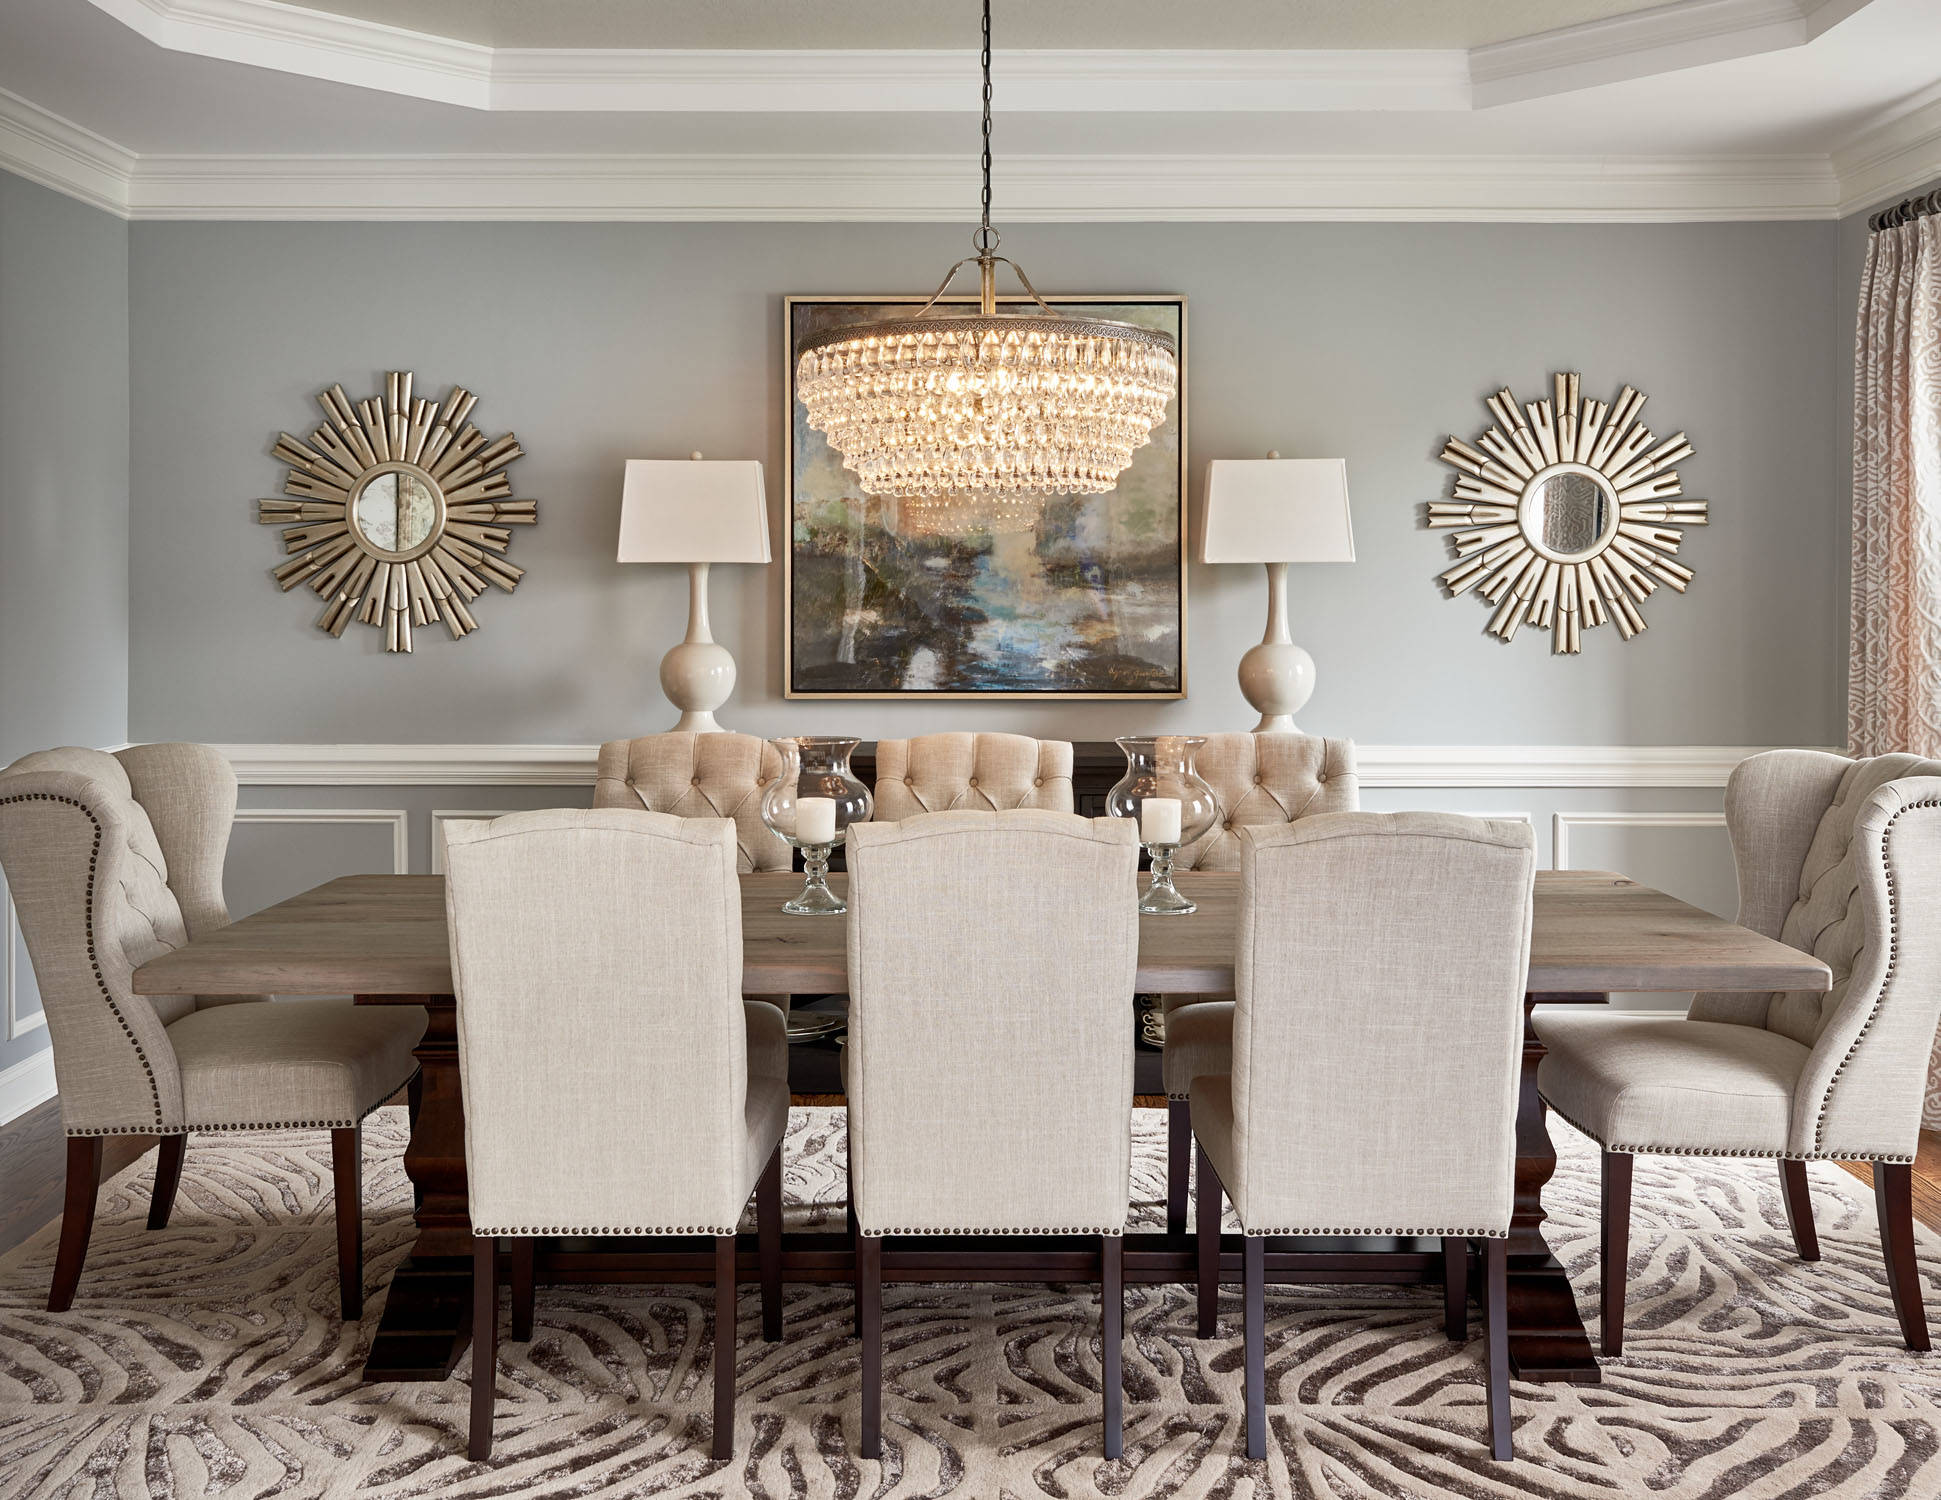 How to 5 secrets to choosing the best quality furniture for your home - Dining room table decor ...